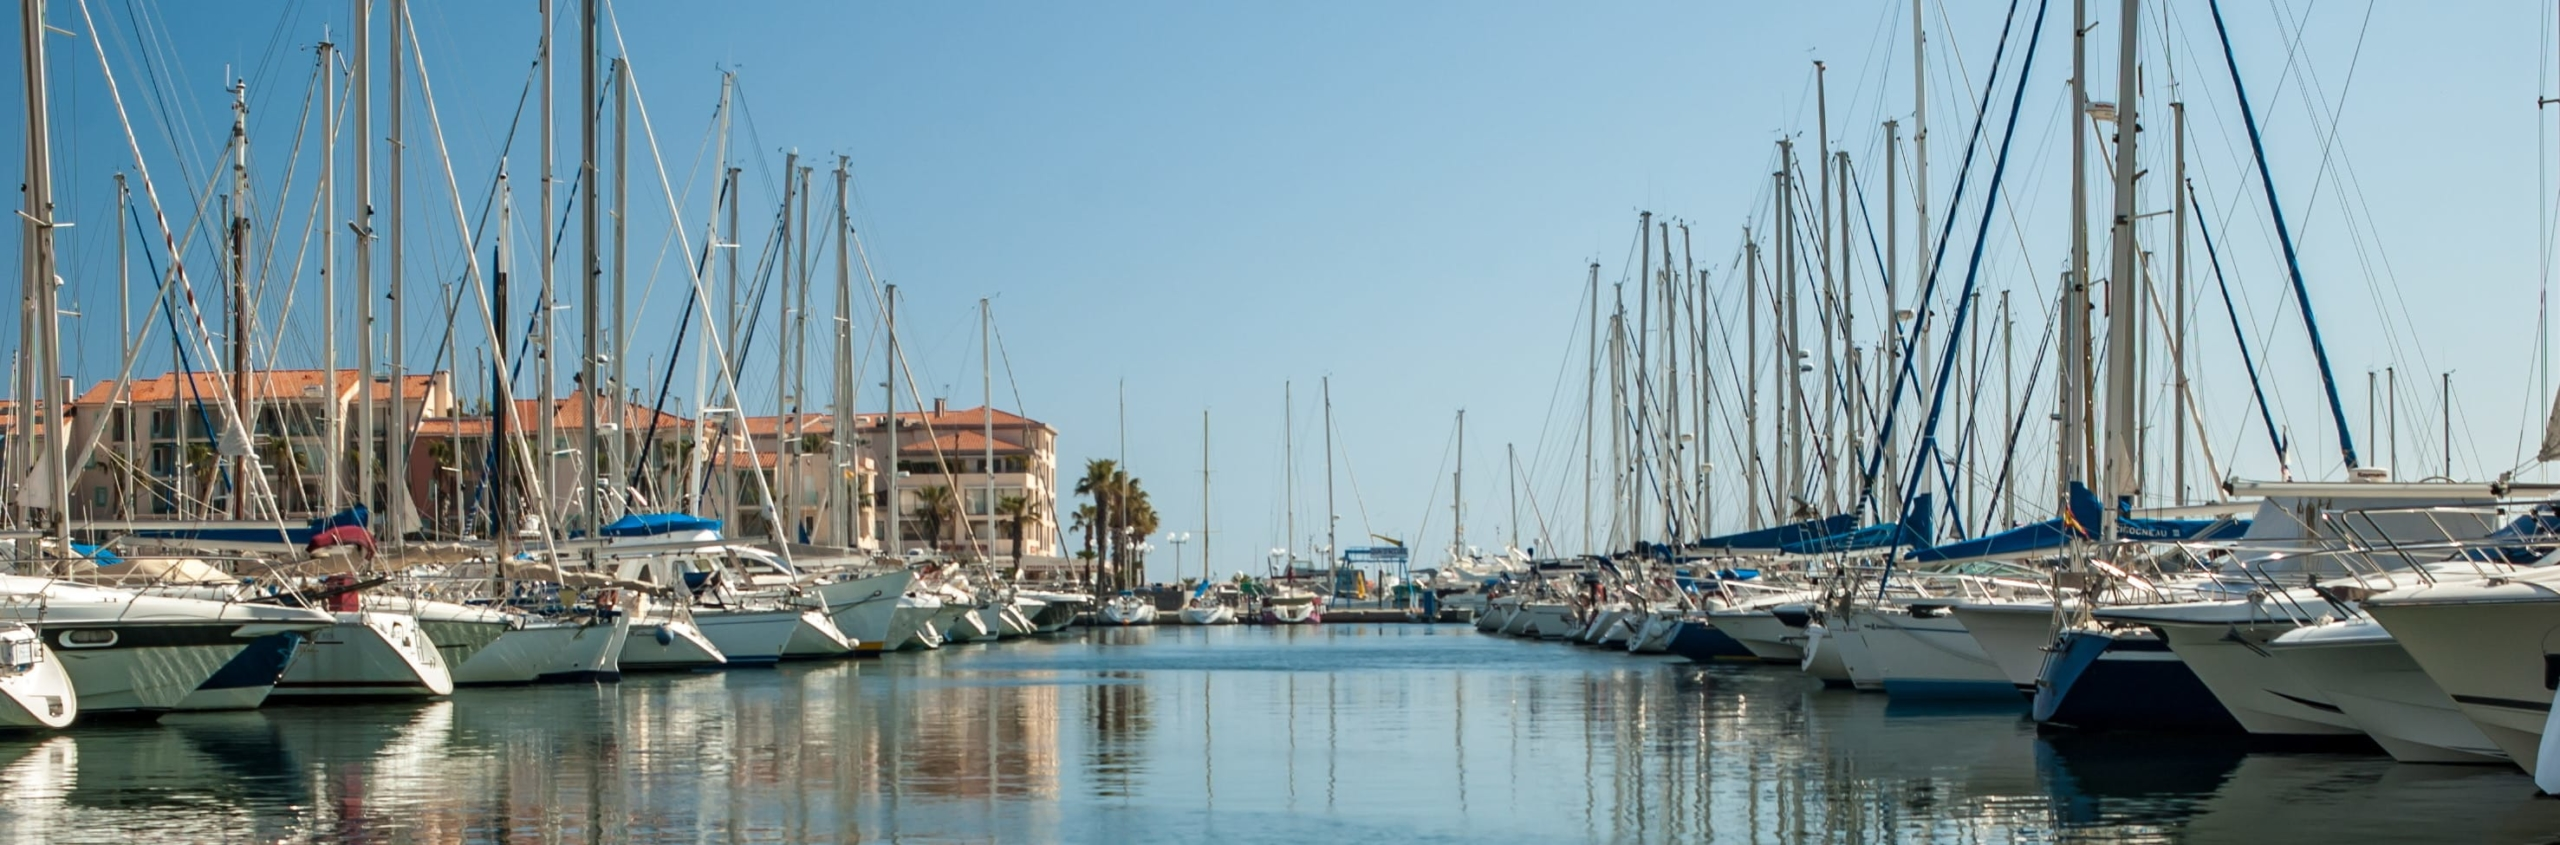 Boats in Argeles Port